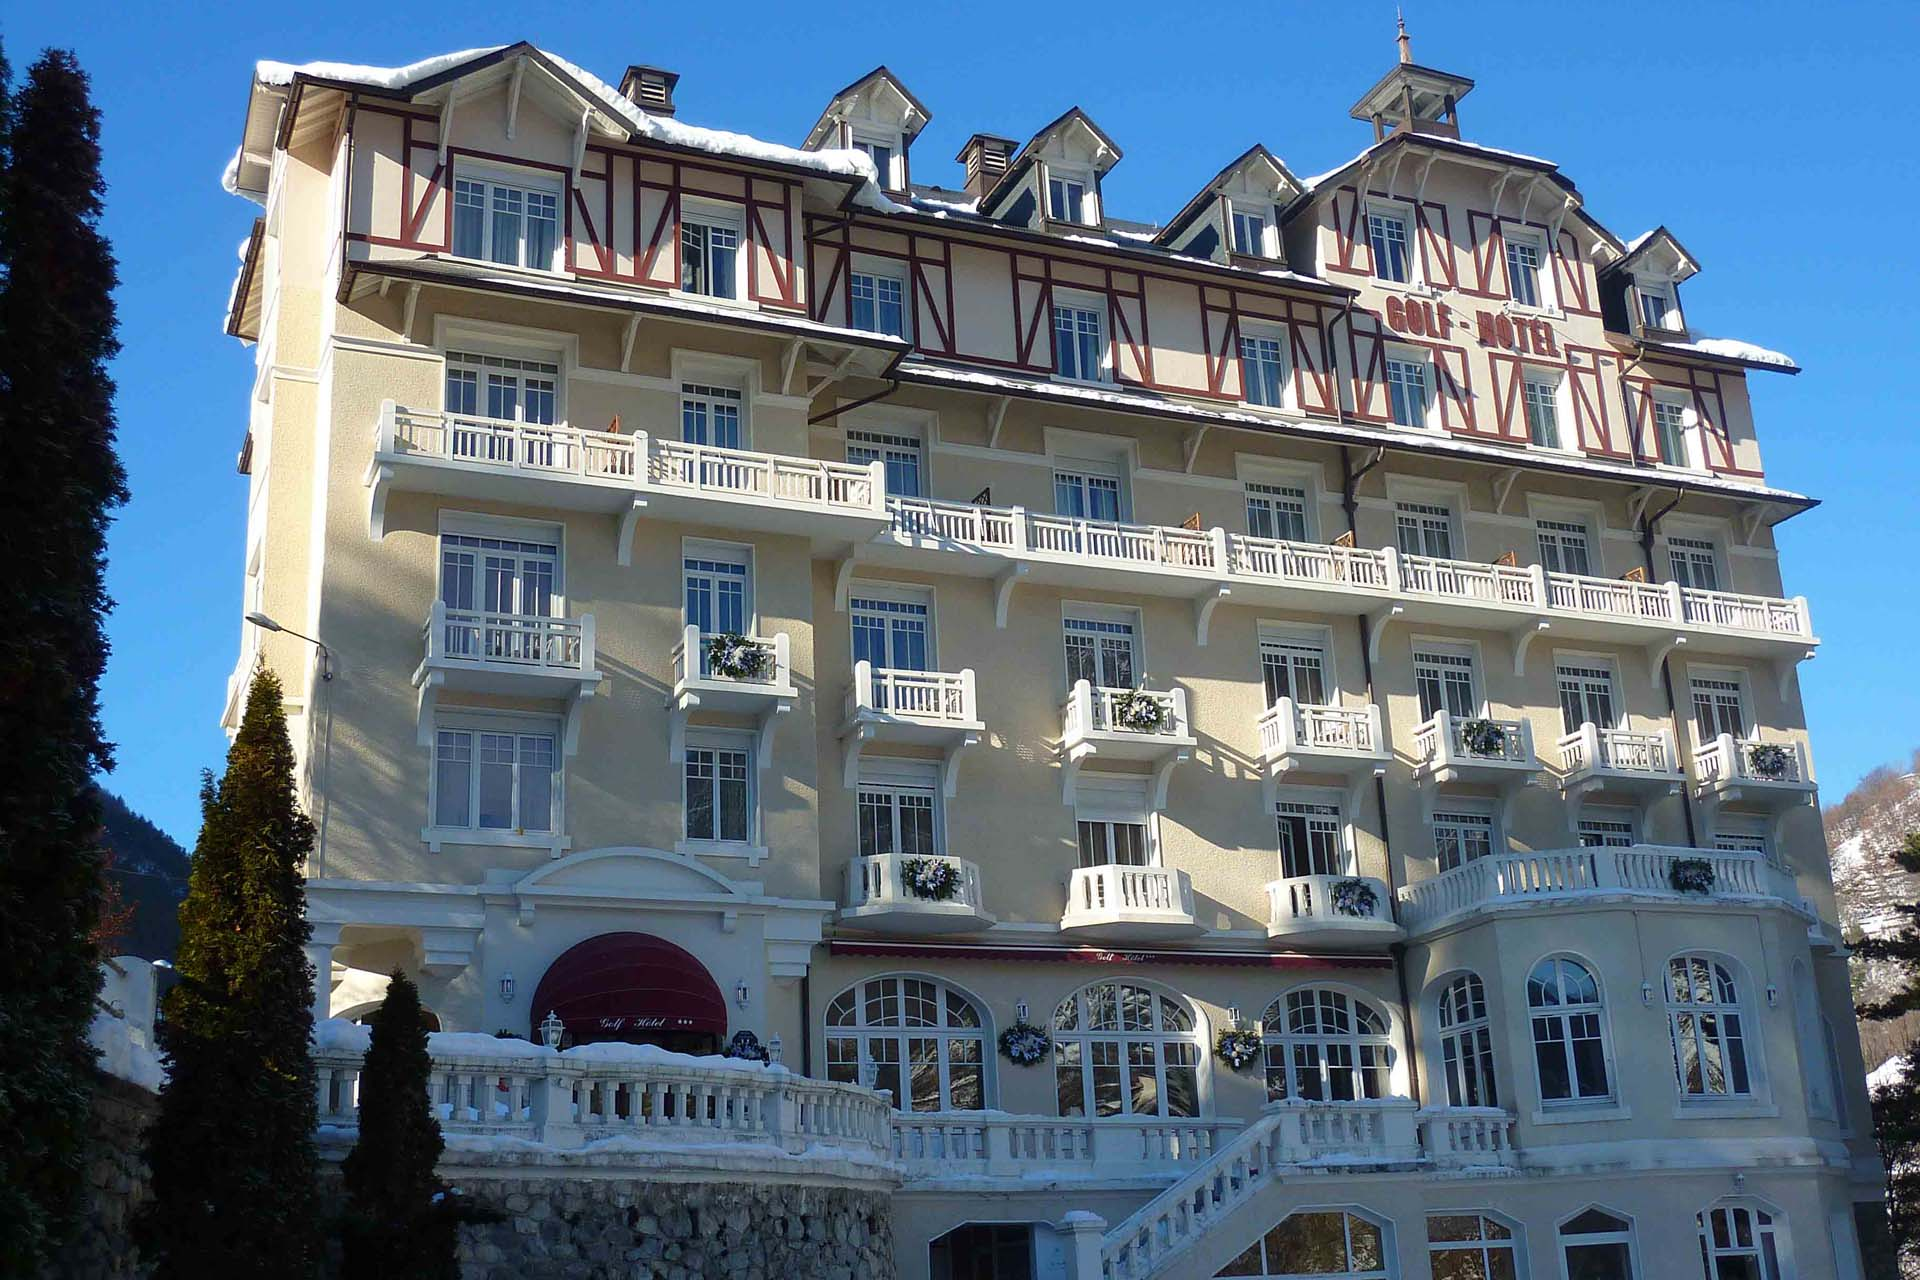 Charmant The Golf Hôtel**** In Brides Les Bains: A Stoneu0027s Throw From The Spa Centre  And The 3 Vallées®